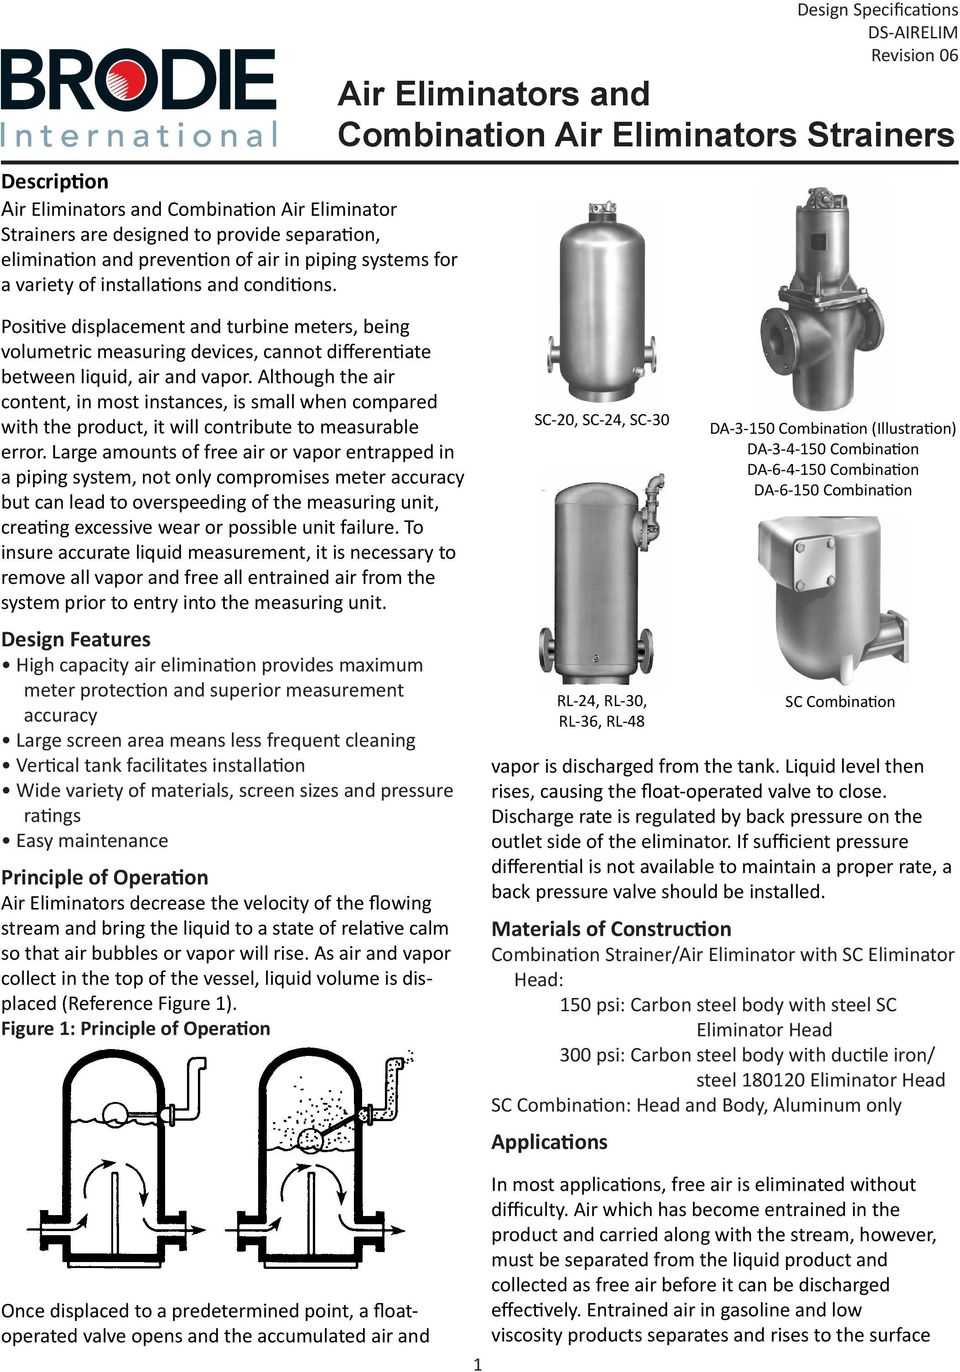 Design Specifications DS-AIRELIM Revision 06 Air Eliminators and Combination Air Eliminators Strainers Positive displacement and turbine meters, being volumetric measuring devices, cannot